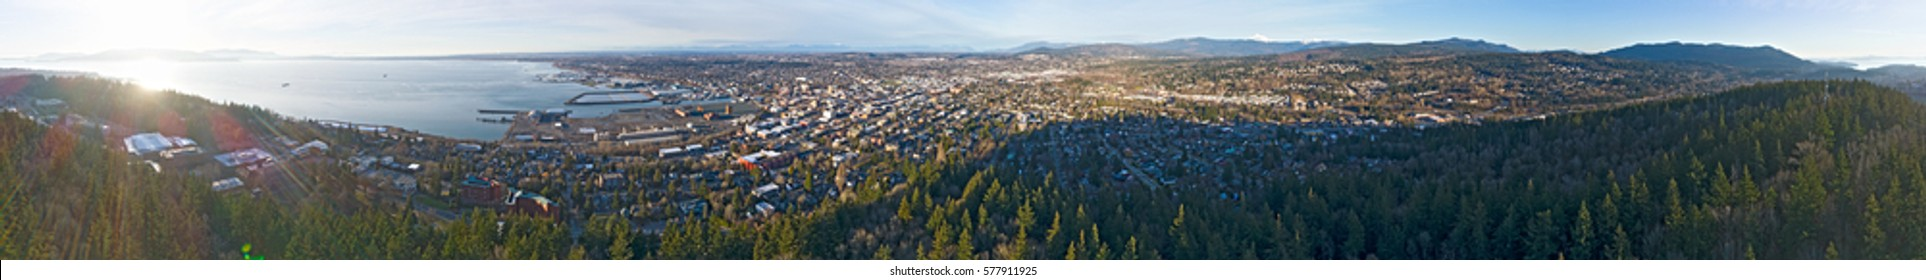 360 Aerial View of Bellingham, Washington State from Bay to Downtown Commercial District, Western Wa University, City and Forests